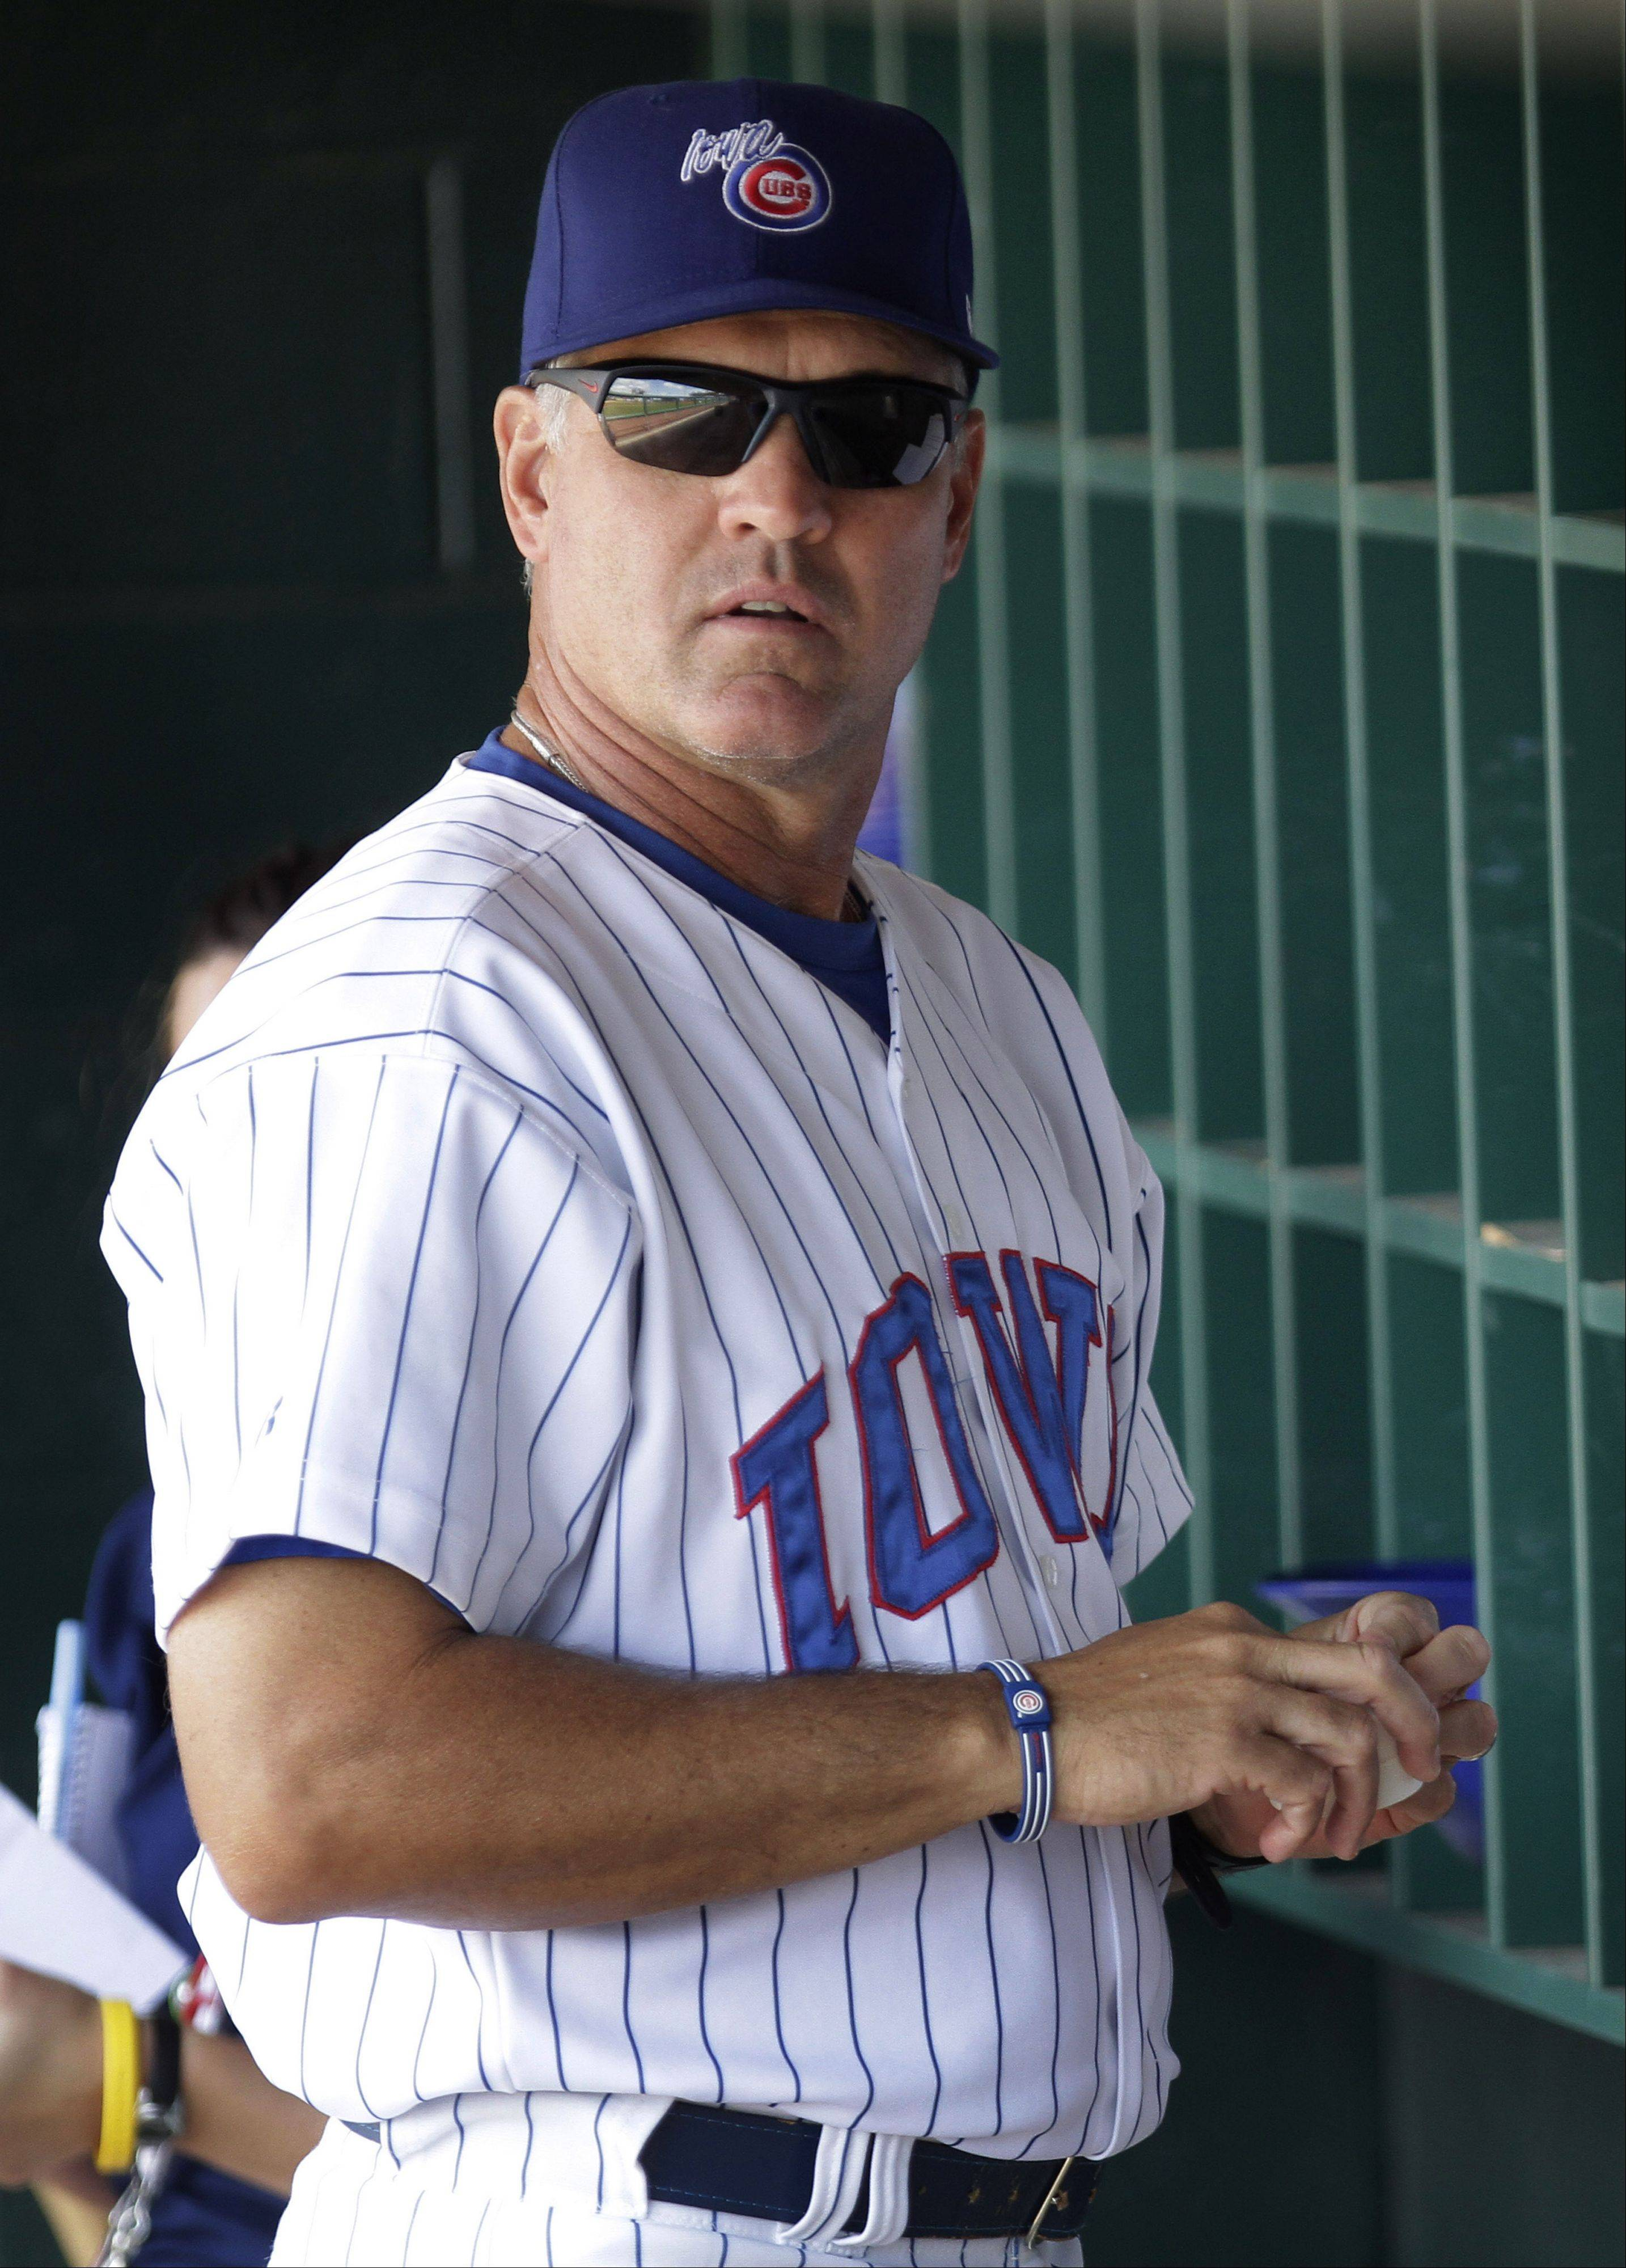 Ryne Sandberg as manager of the Iowa Cubs in the summer of 2010.